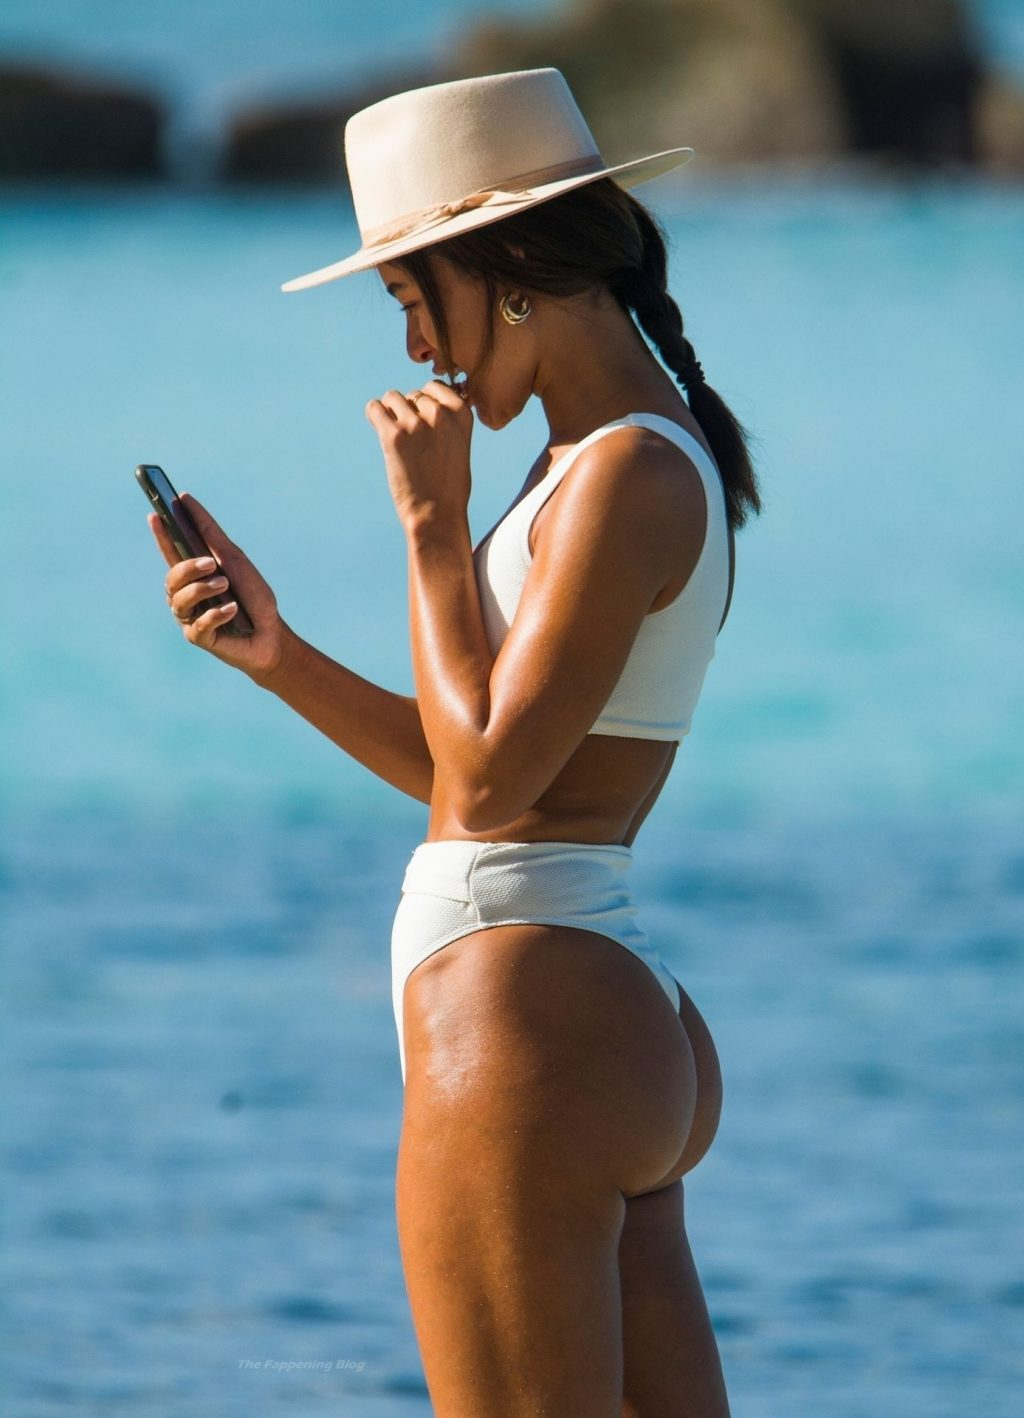 Montana Brown Showcases Her Sexy Curvaceous Beach Body Physique in a White Swimsuit (56 Photos)